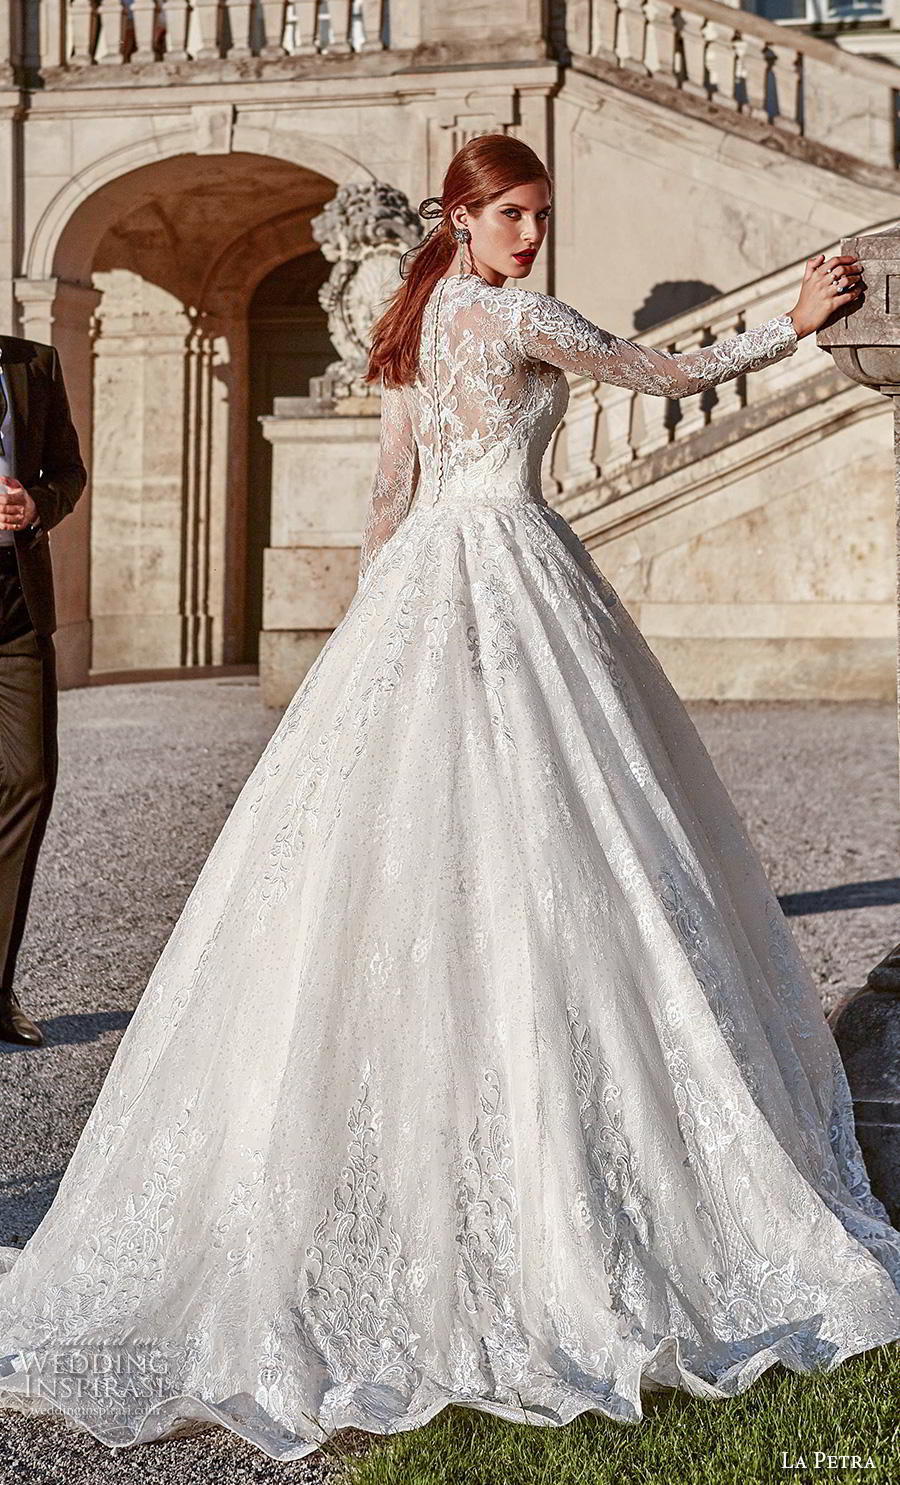 la petra 2020 bridal long sleeves illusion jewel plunging sweetheart neckline full embellishment princess ball gown a  line wedding dress lace back sweep train (17) bv